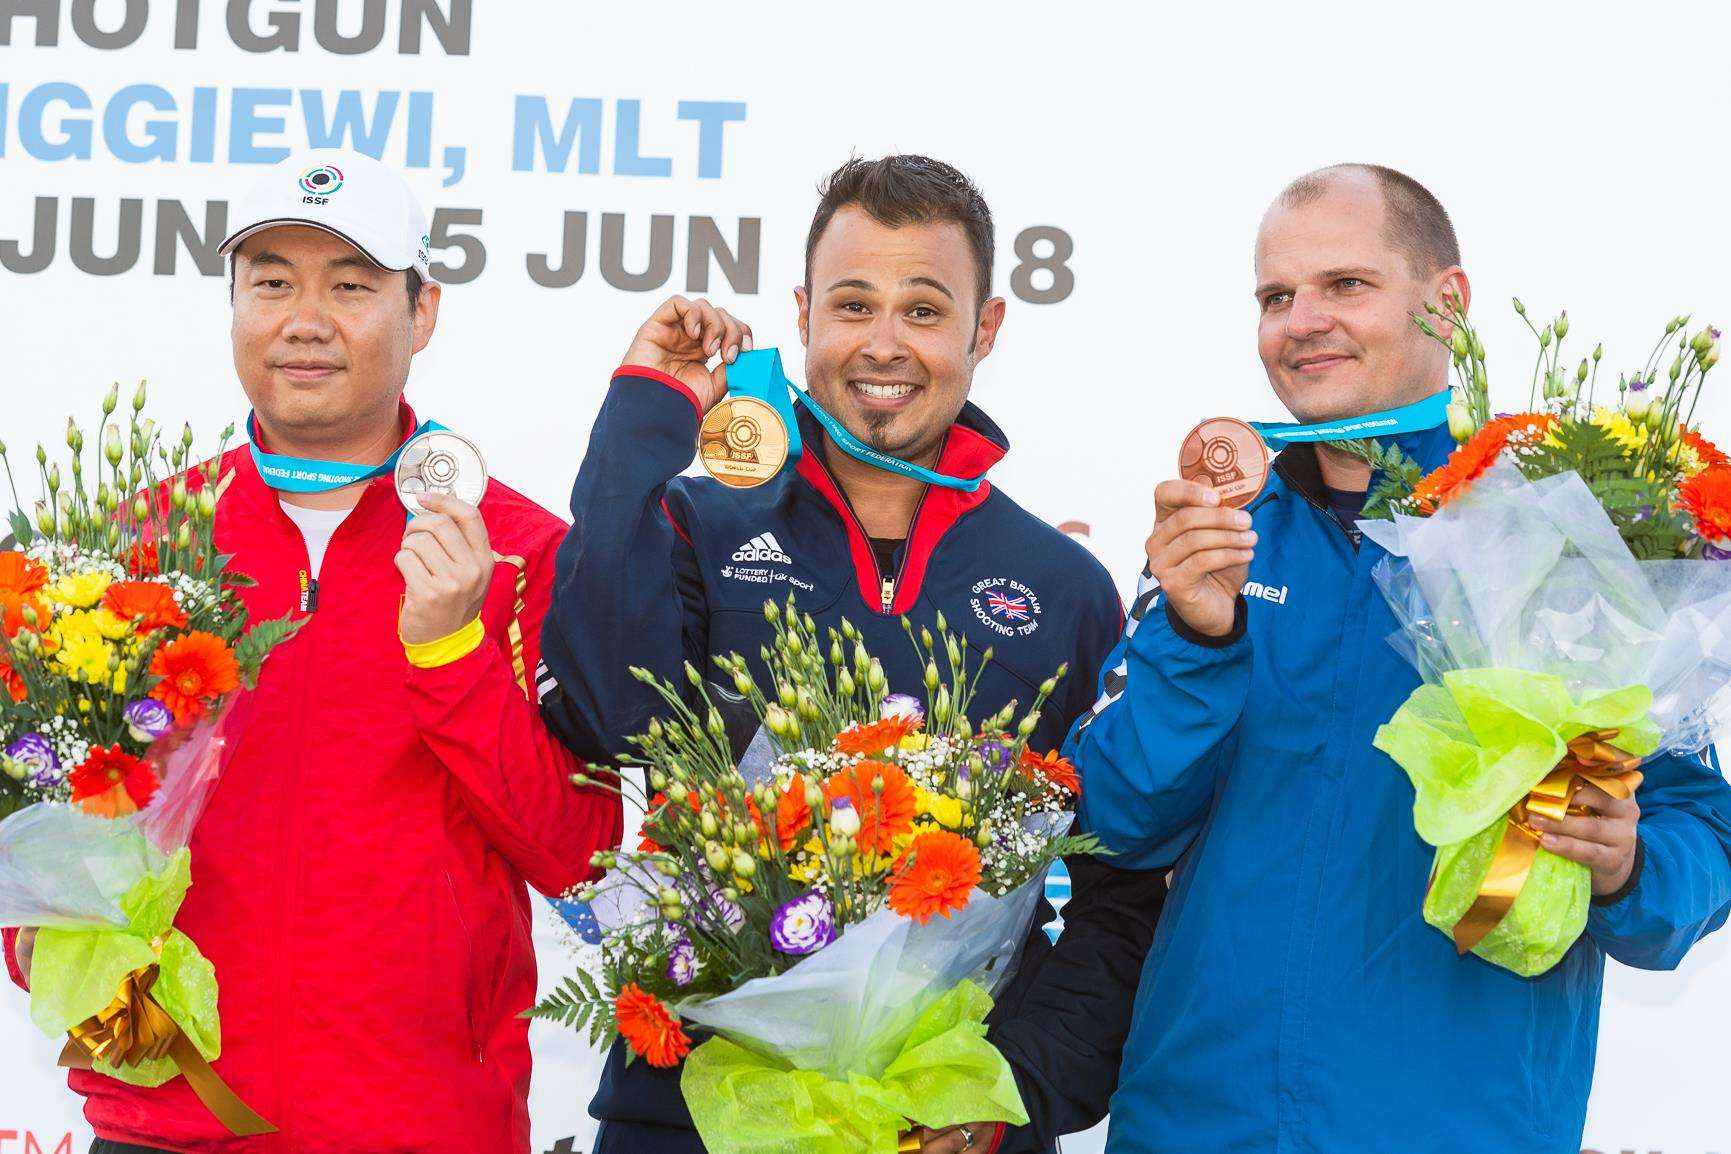 Aaron Heading with silver medalist Yu Du and third-placed Marian Kovacocy after the men's trap final at the Malta National Shooting Ranges. Photo by Nicolo Zangirolami